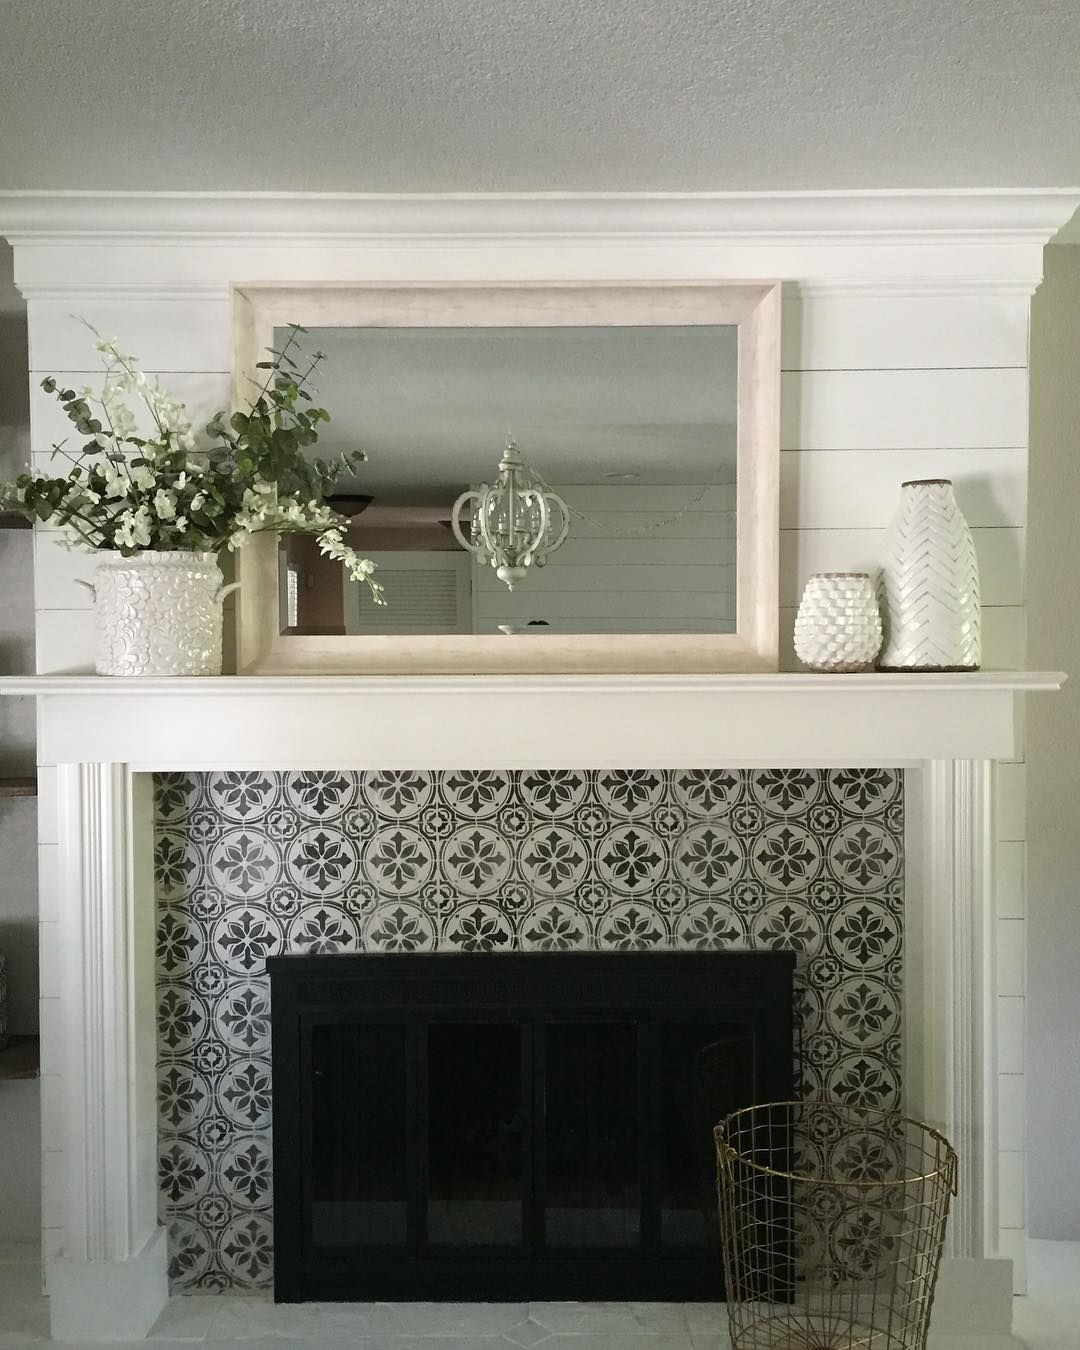 A DIY stenciled fireplace surround using the Abbey Tile Stencil from Cutting Edge Stencils    Project via @co_houseland    http://www.cuttingedgestencils.com/Cement-tile-stencils-stenciled-floor-tiles.html